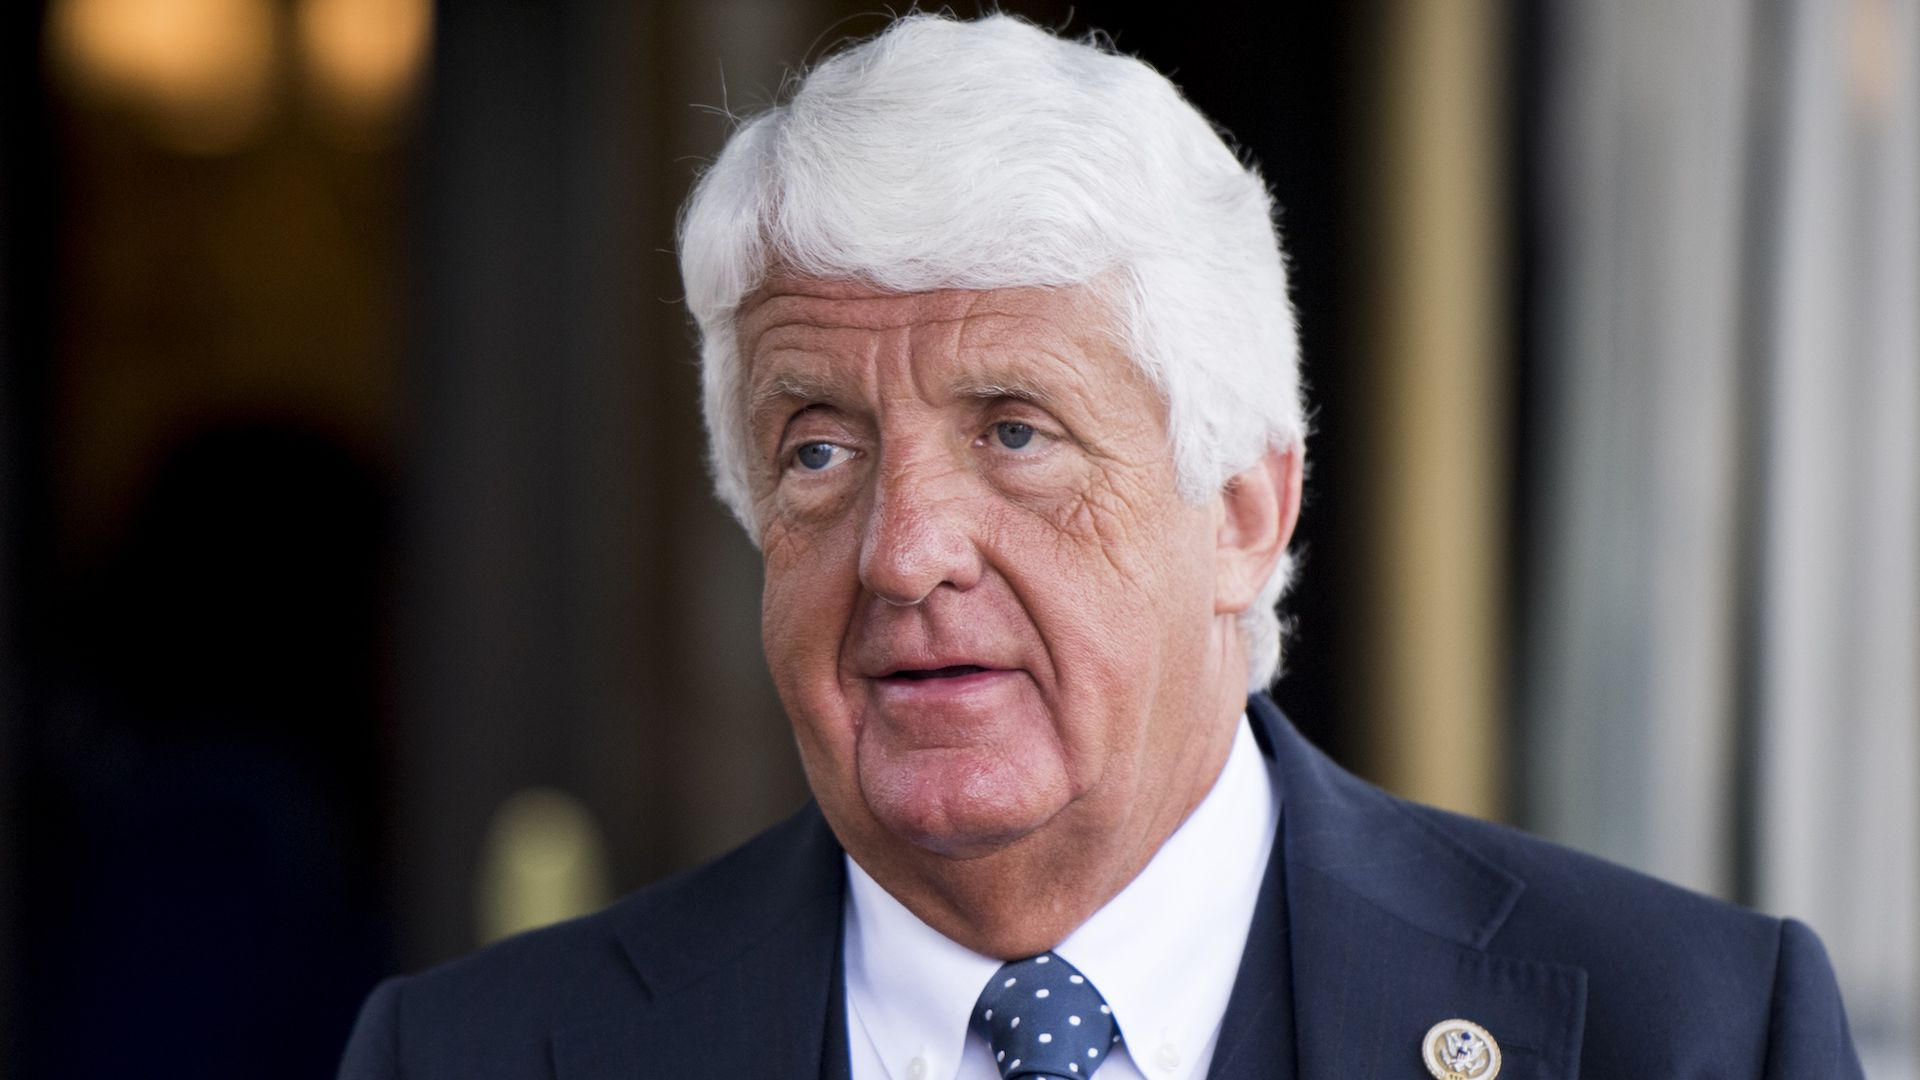 Rep. Rob Bishop, who made controversial comments on the Green New Deal.